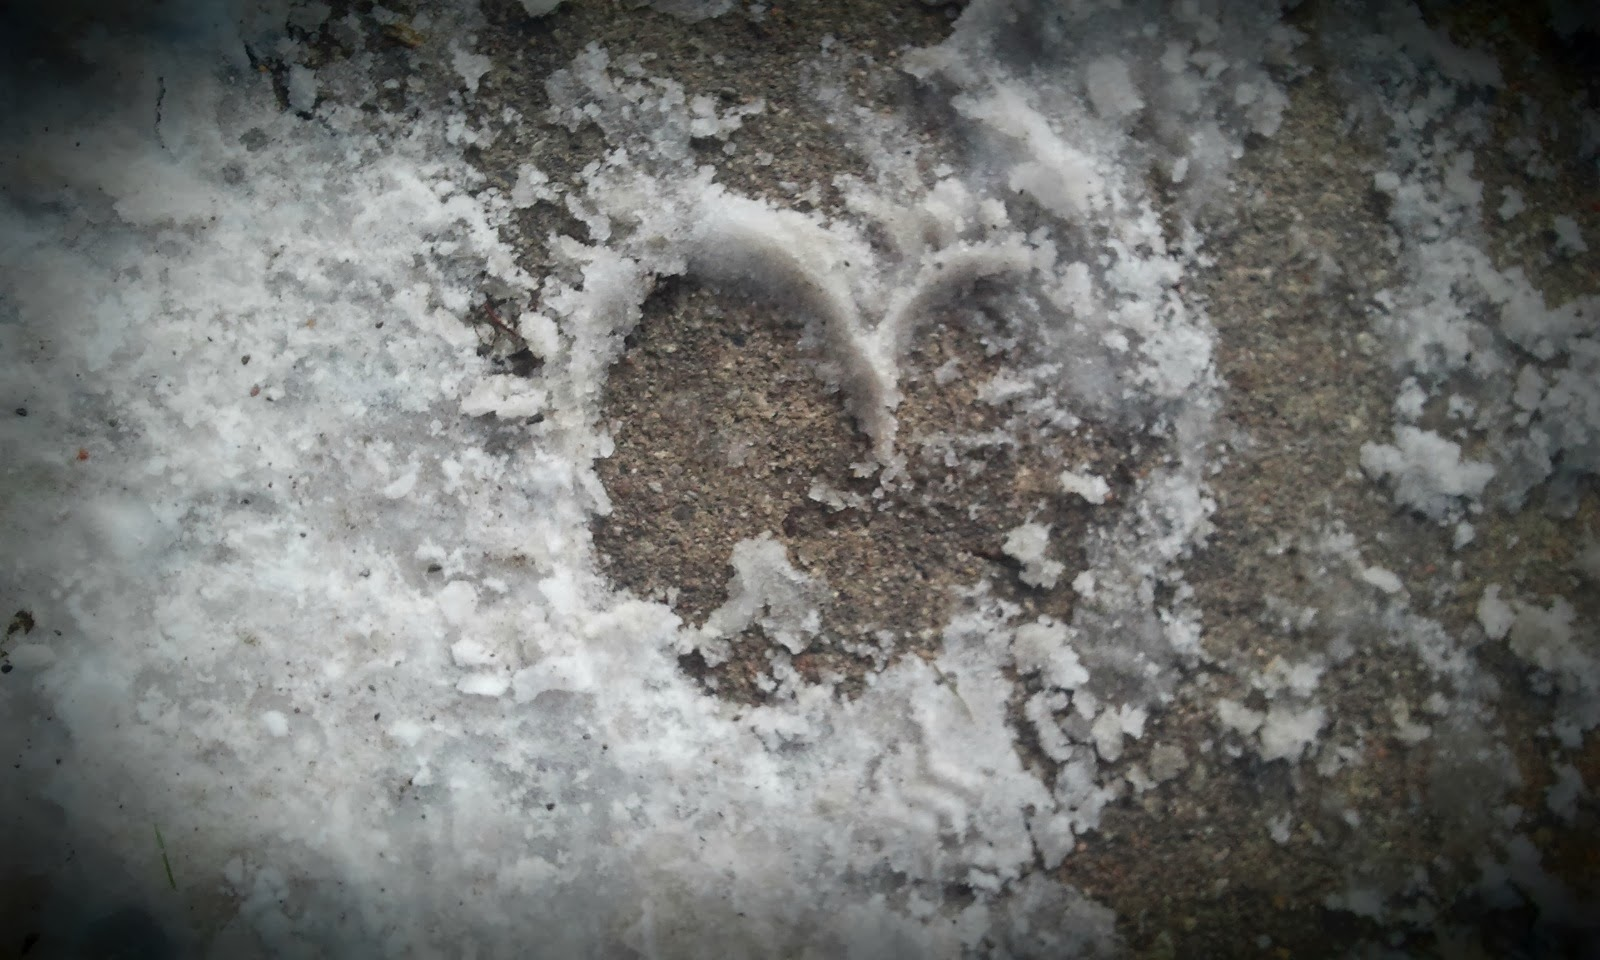 heart print in the snow